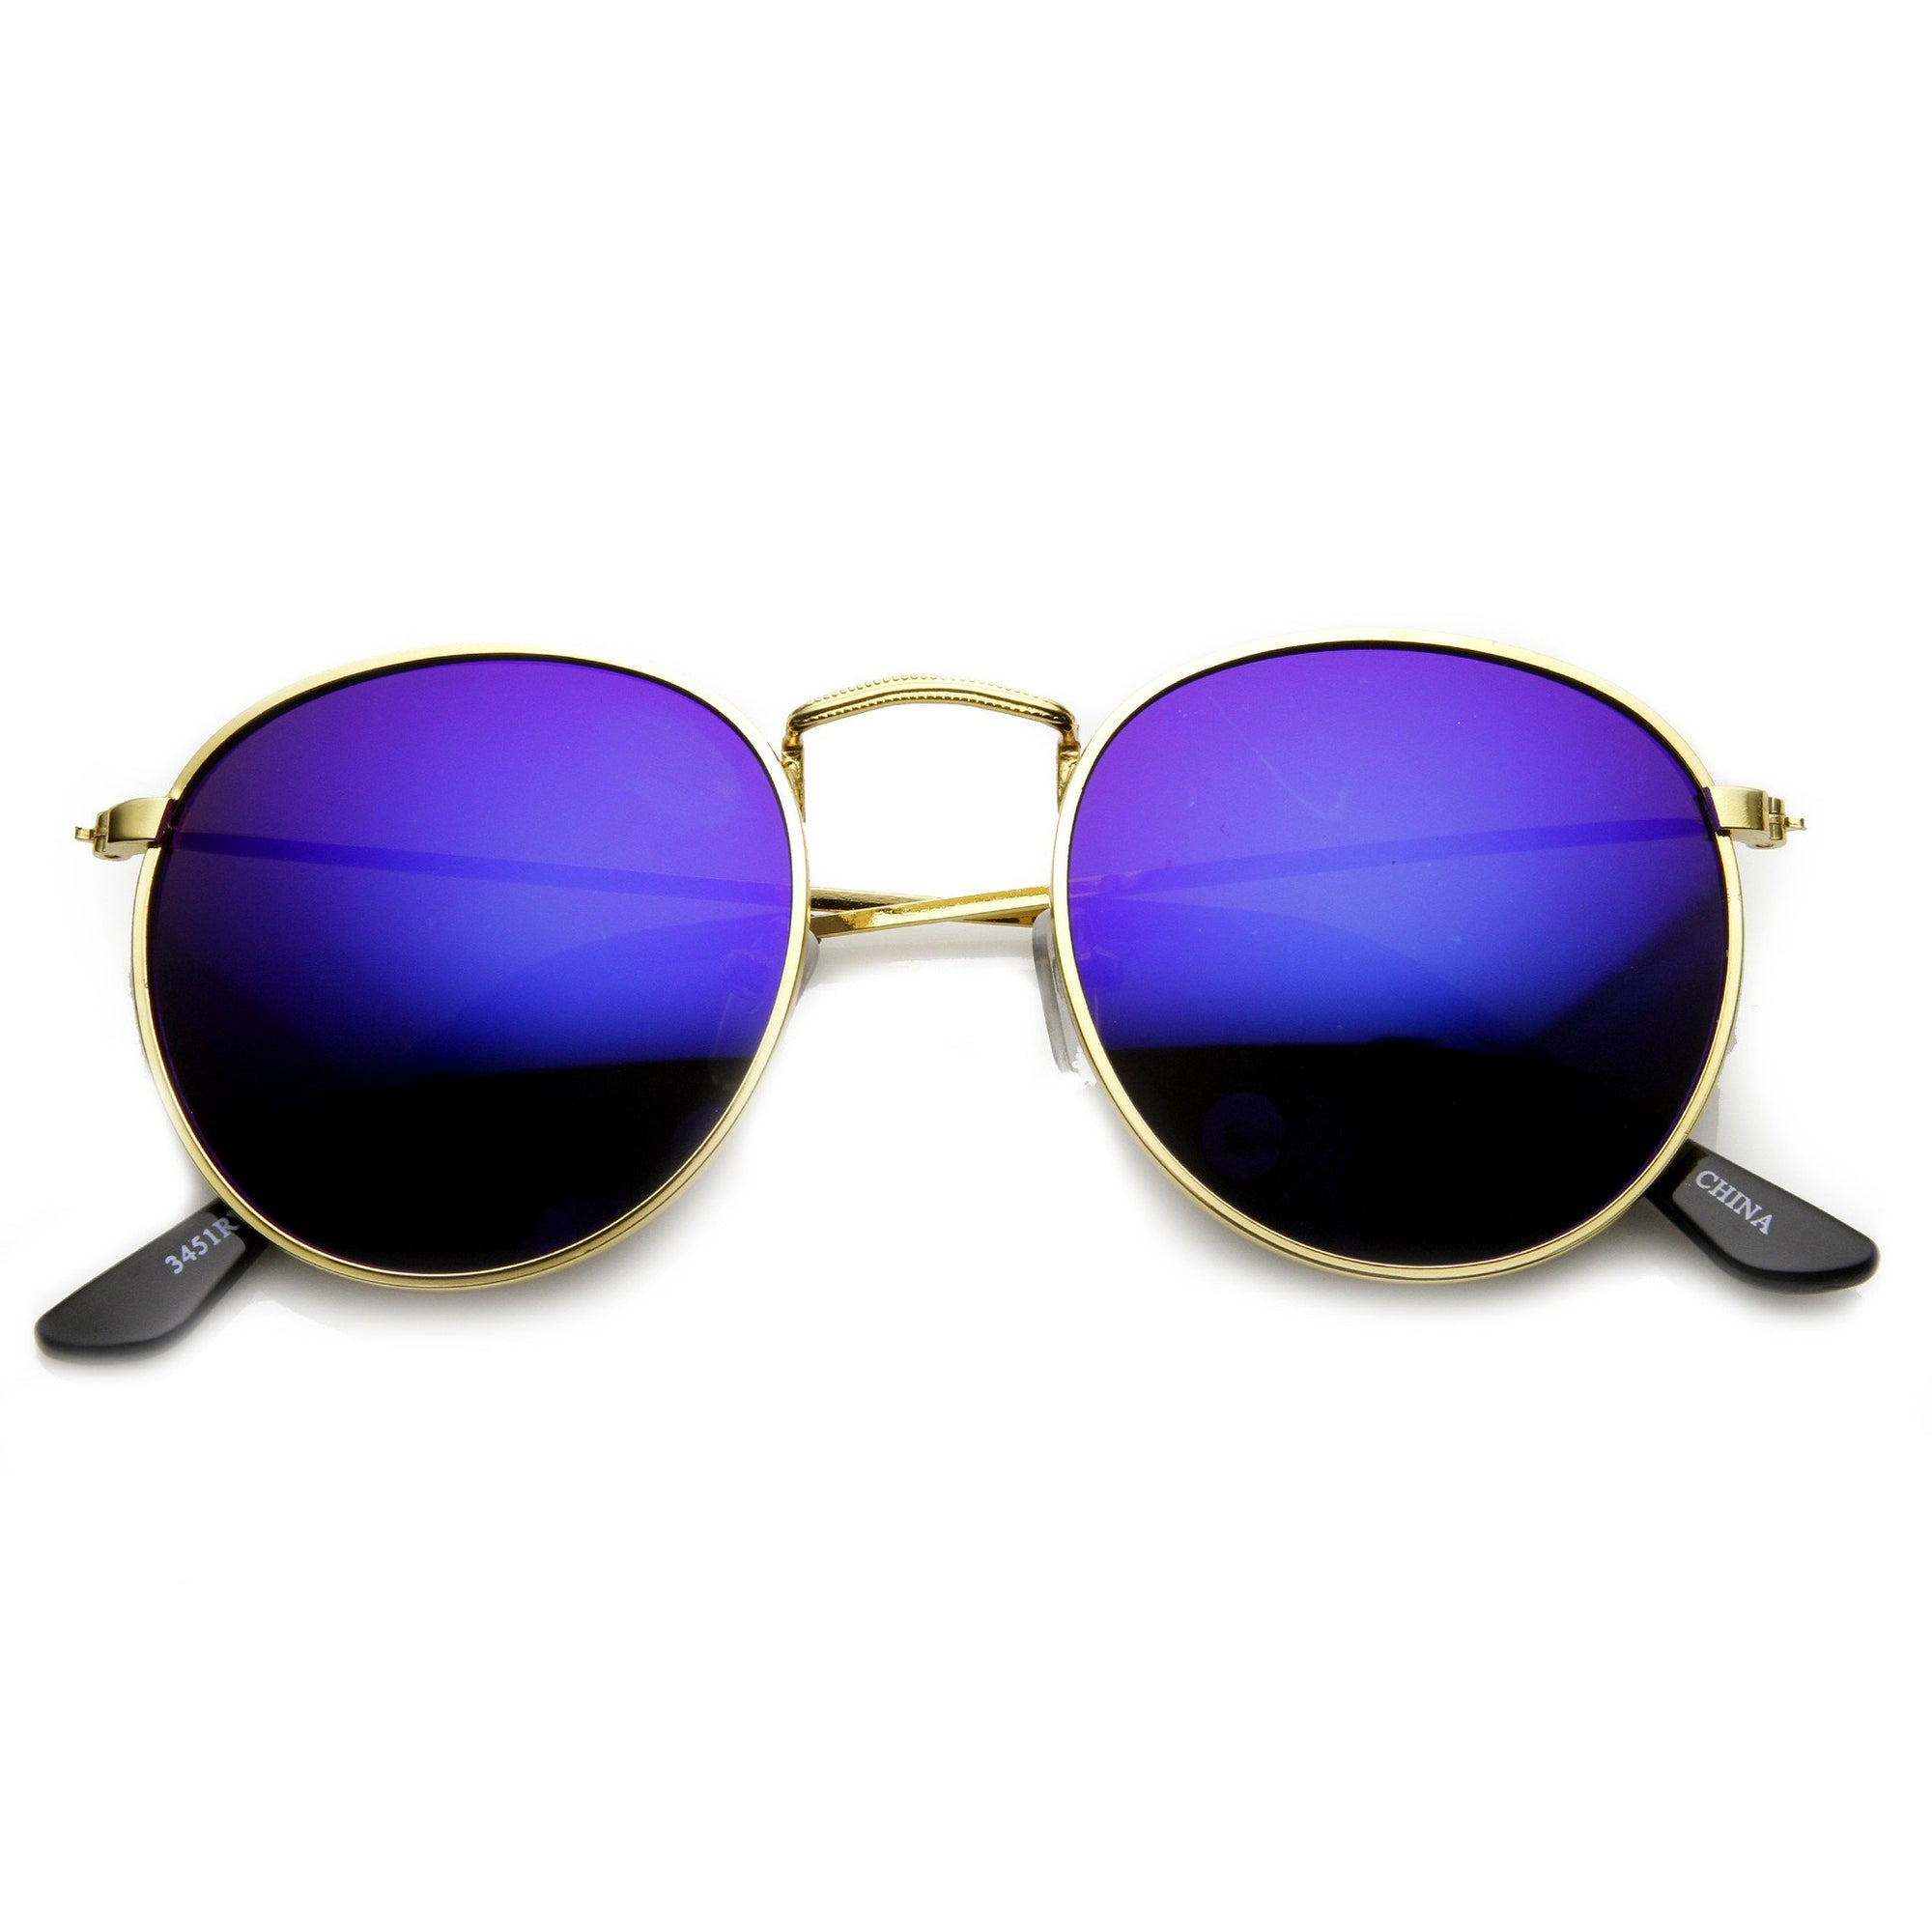 Retro P3 Round Flash Color Mirror Lens Metal Sunglasses 9208